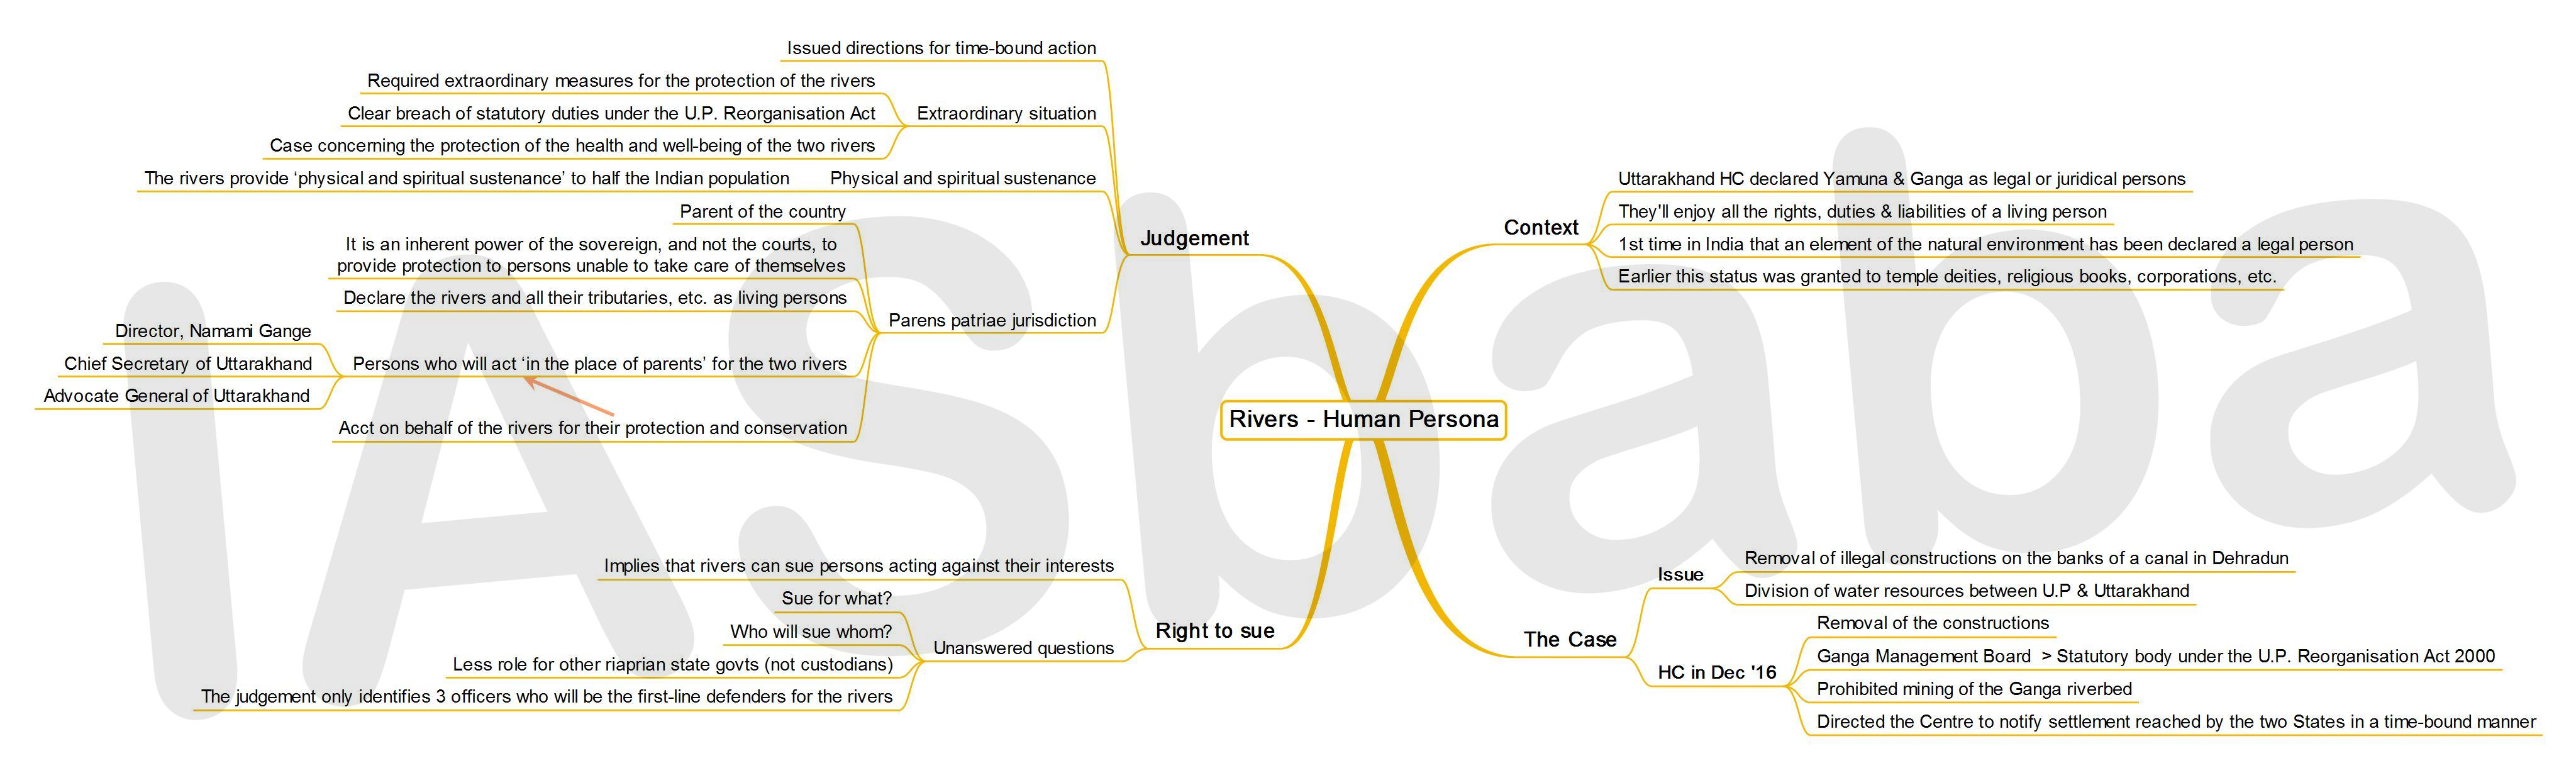 IASbaba's MINDMAP : Issue - Rivers - Human Persona